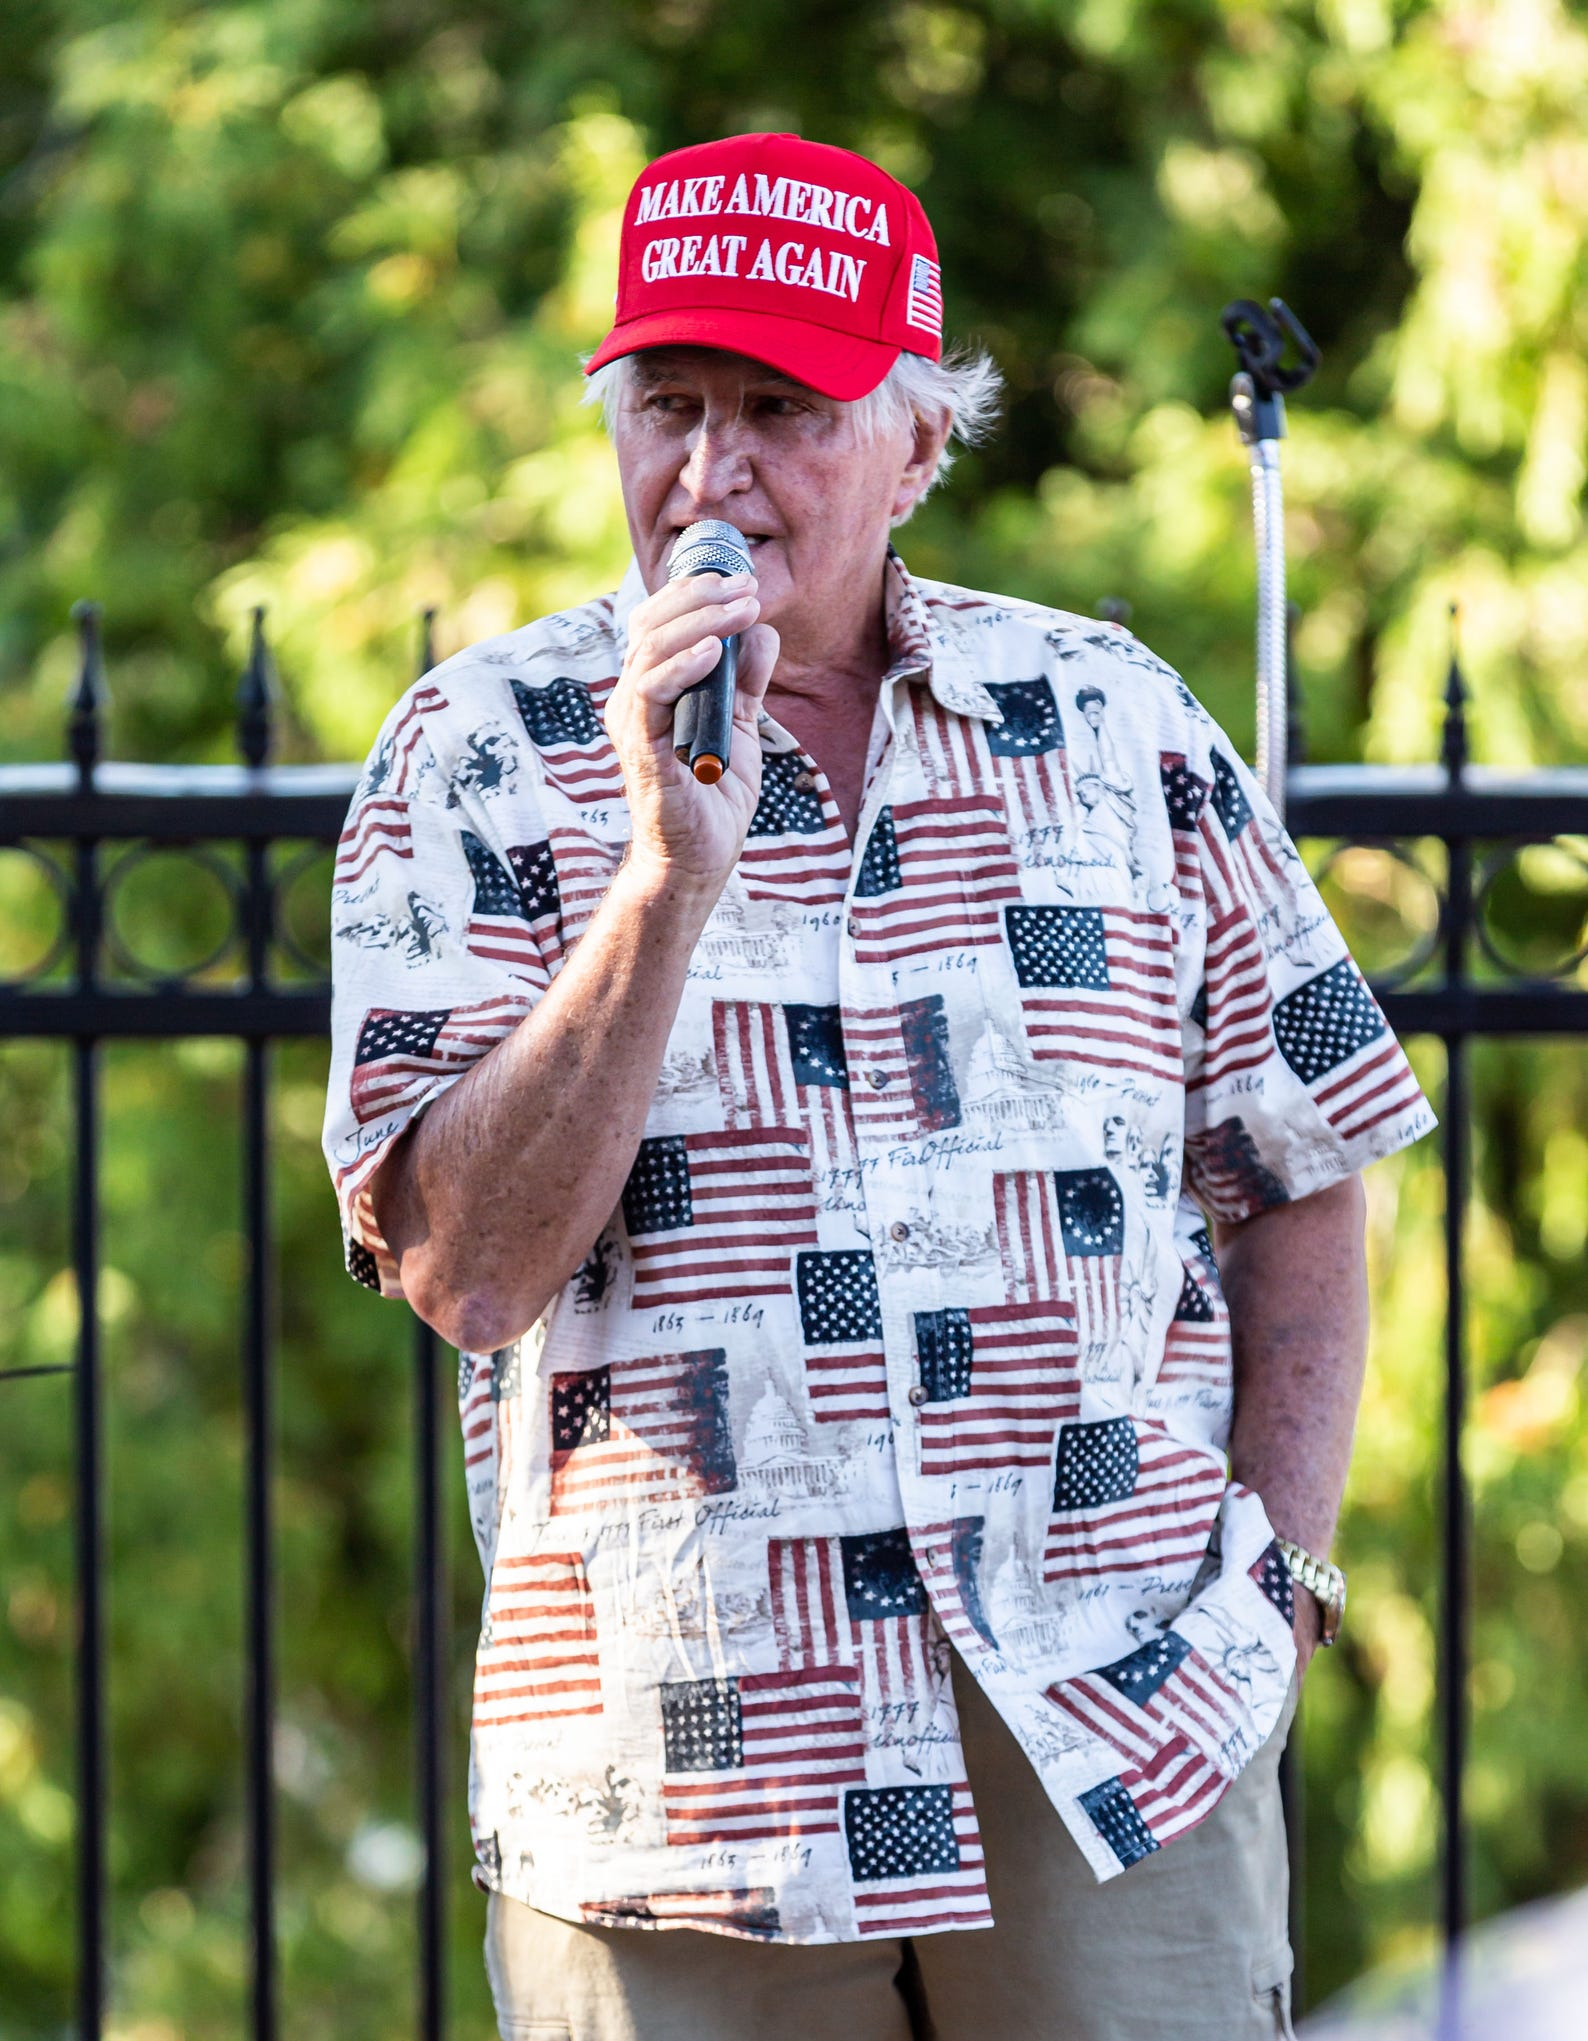 Hans Weissgerber Jr. addresses the crowd at The Golden Mast restaurant in Okauchee during a boat parade in support of President Trump on Saturday, August 29. The event was hosted by the Republican Party of Waukesha County.